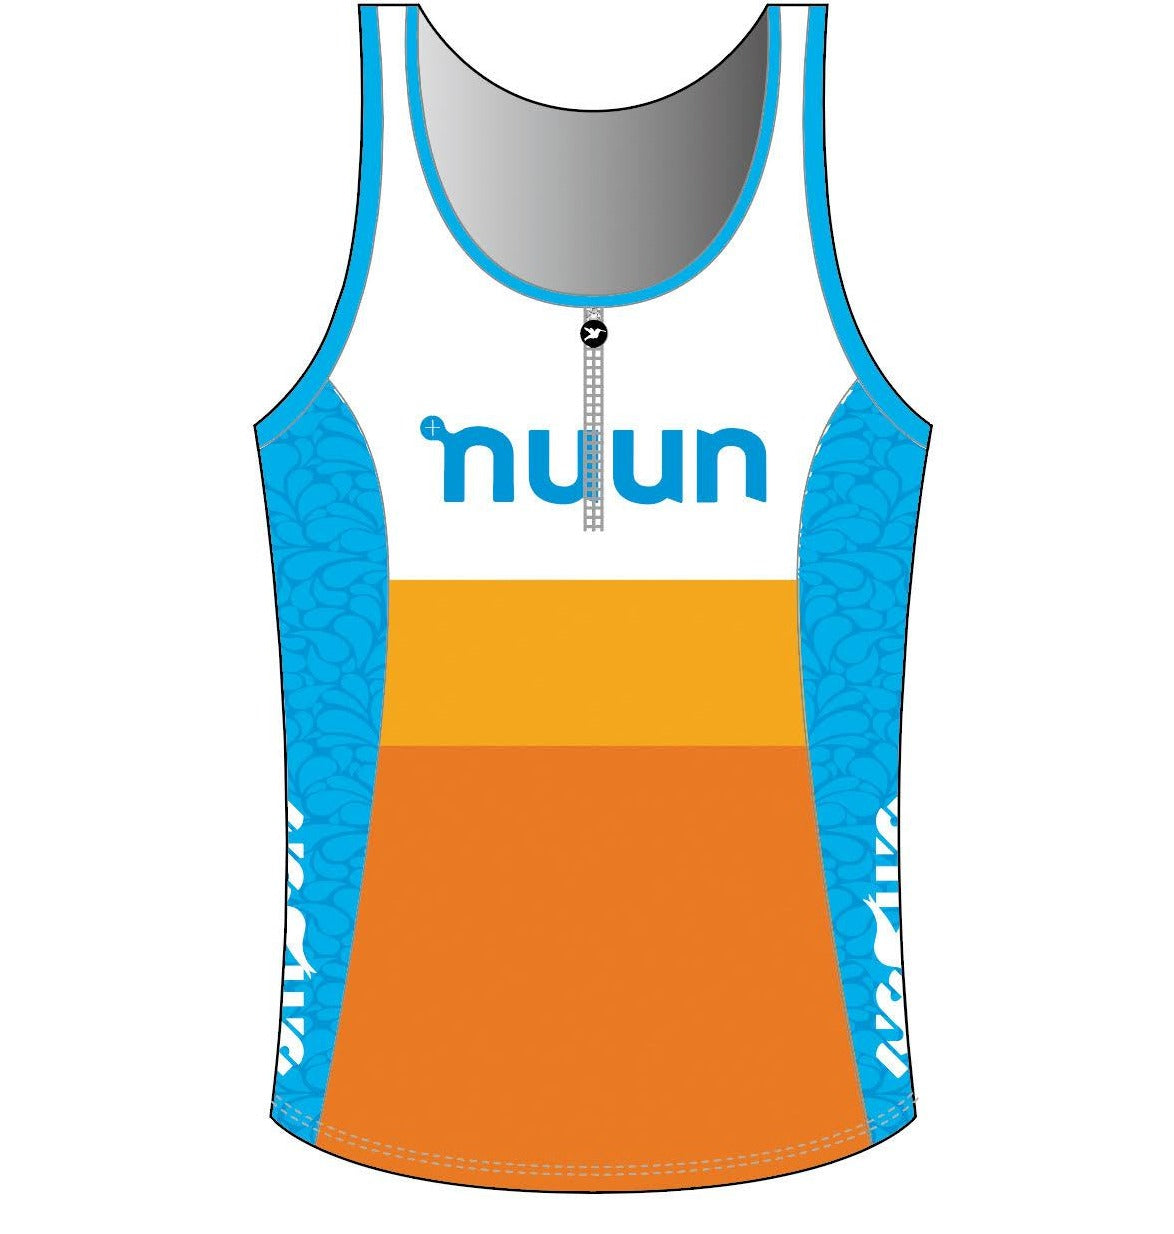 2021 Nuun Hydration Women's Tri Top with Zip Pre-order